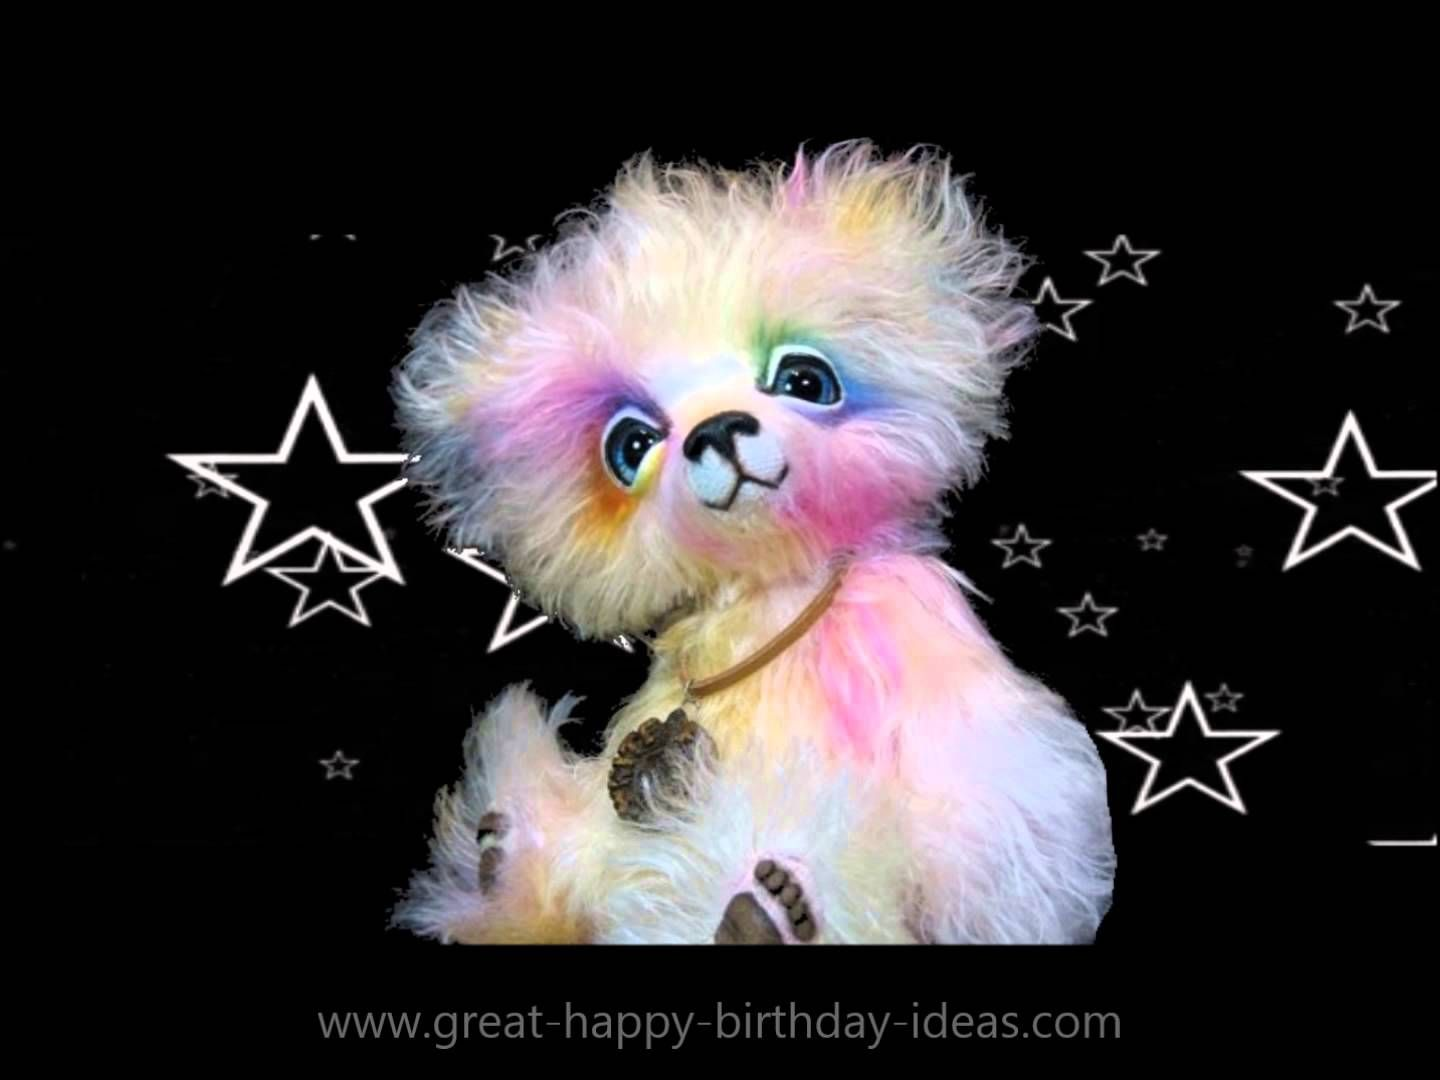 Aurora sings happy birthday from the white forest bear collection send this real cute happy birthday ecard to wish friends and family an extra happy birthday aurora from the white forest bear collection sings a birthday bookmarktalkfo Image collections